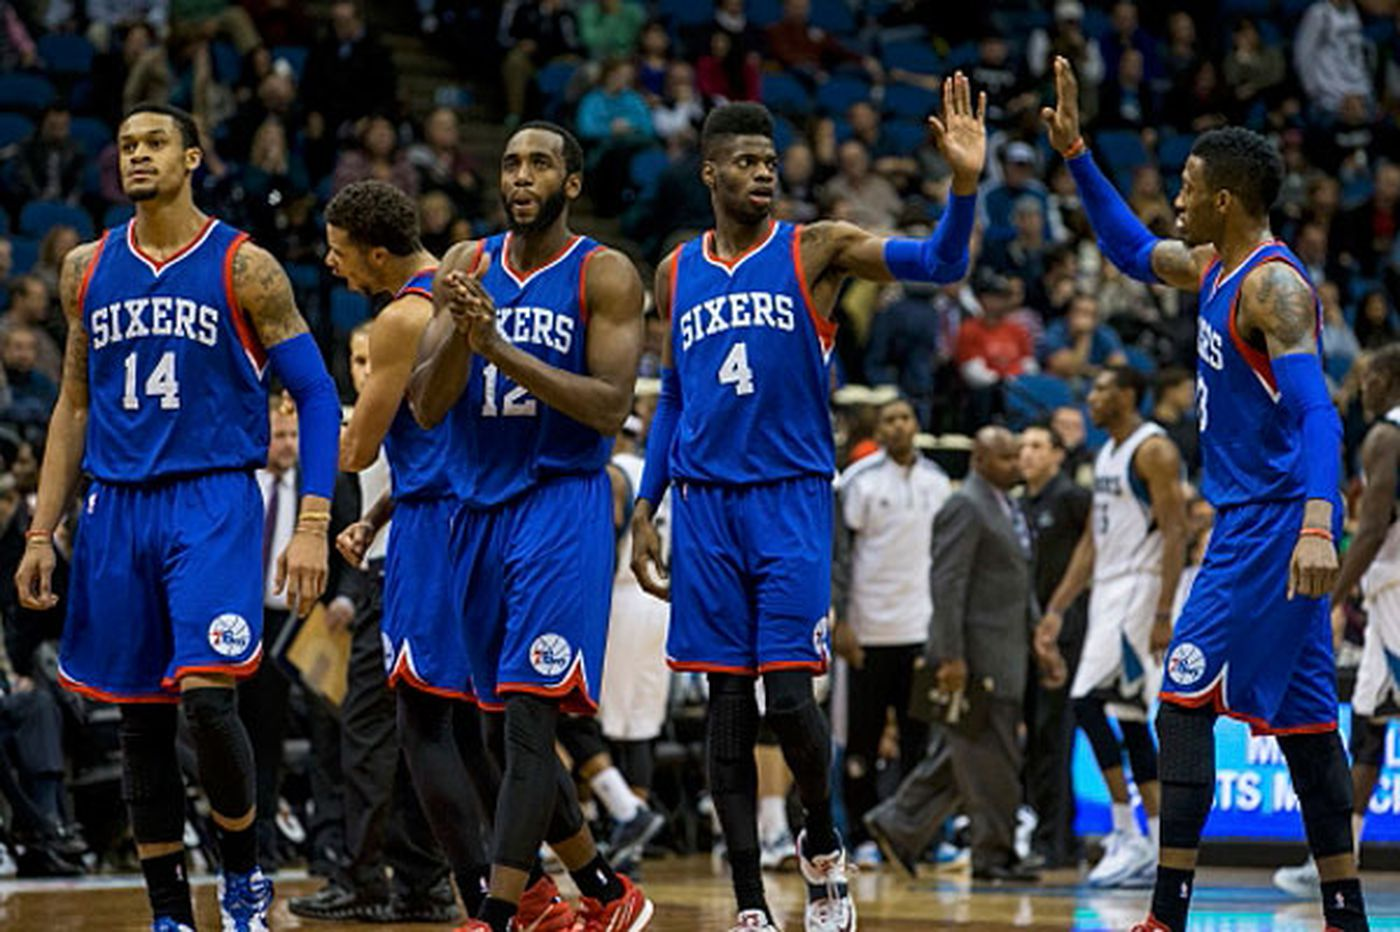 Will success spoil the Sixers?